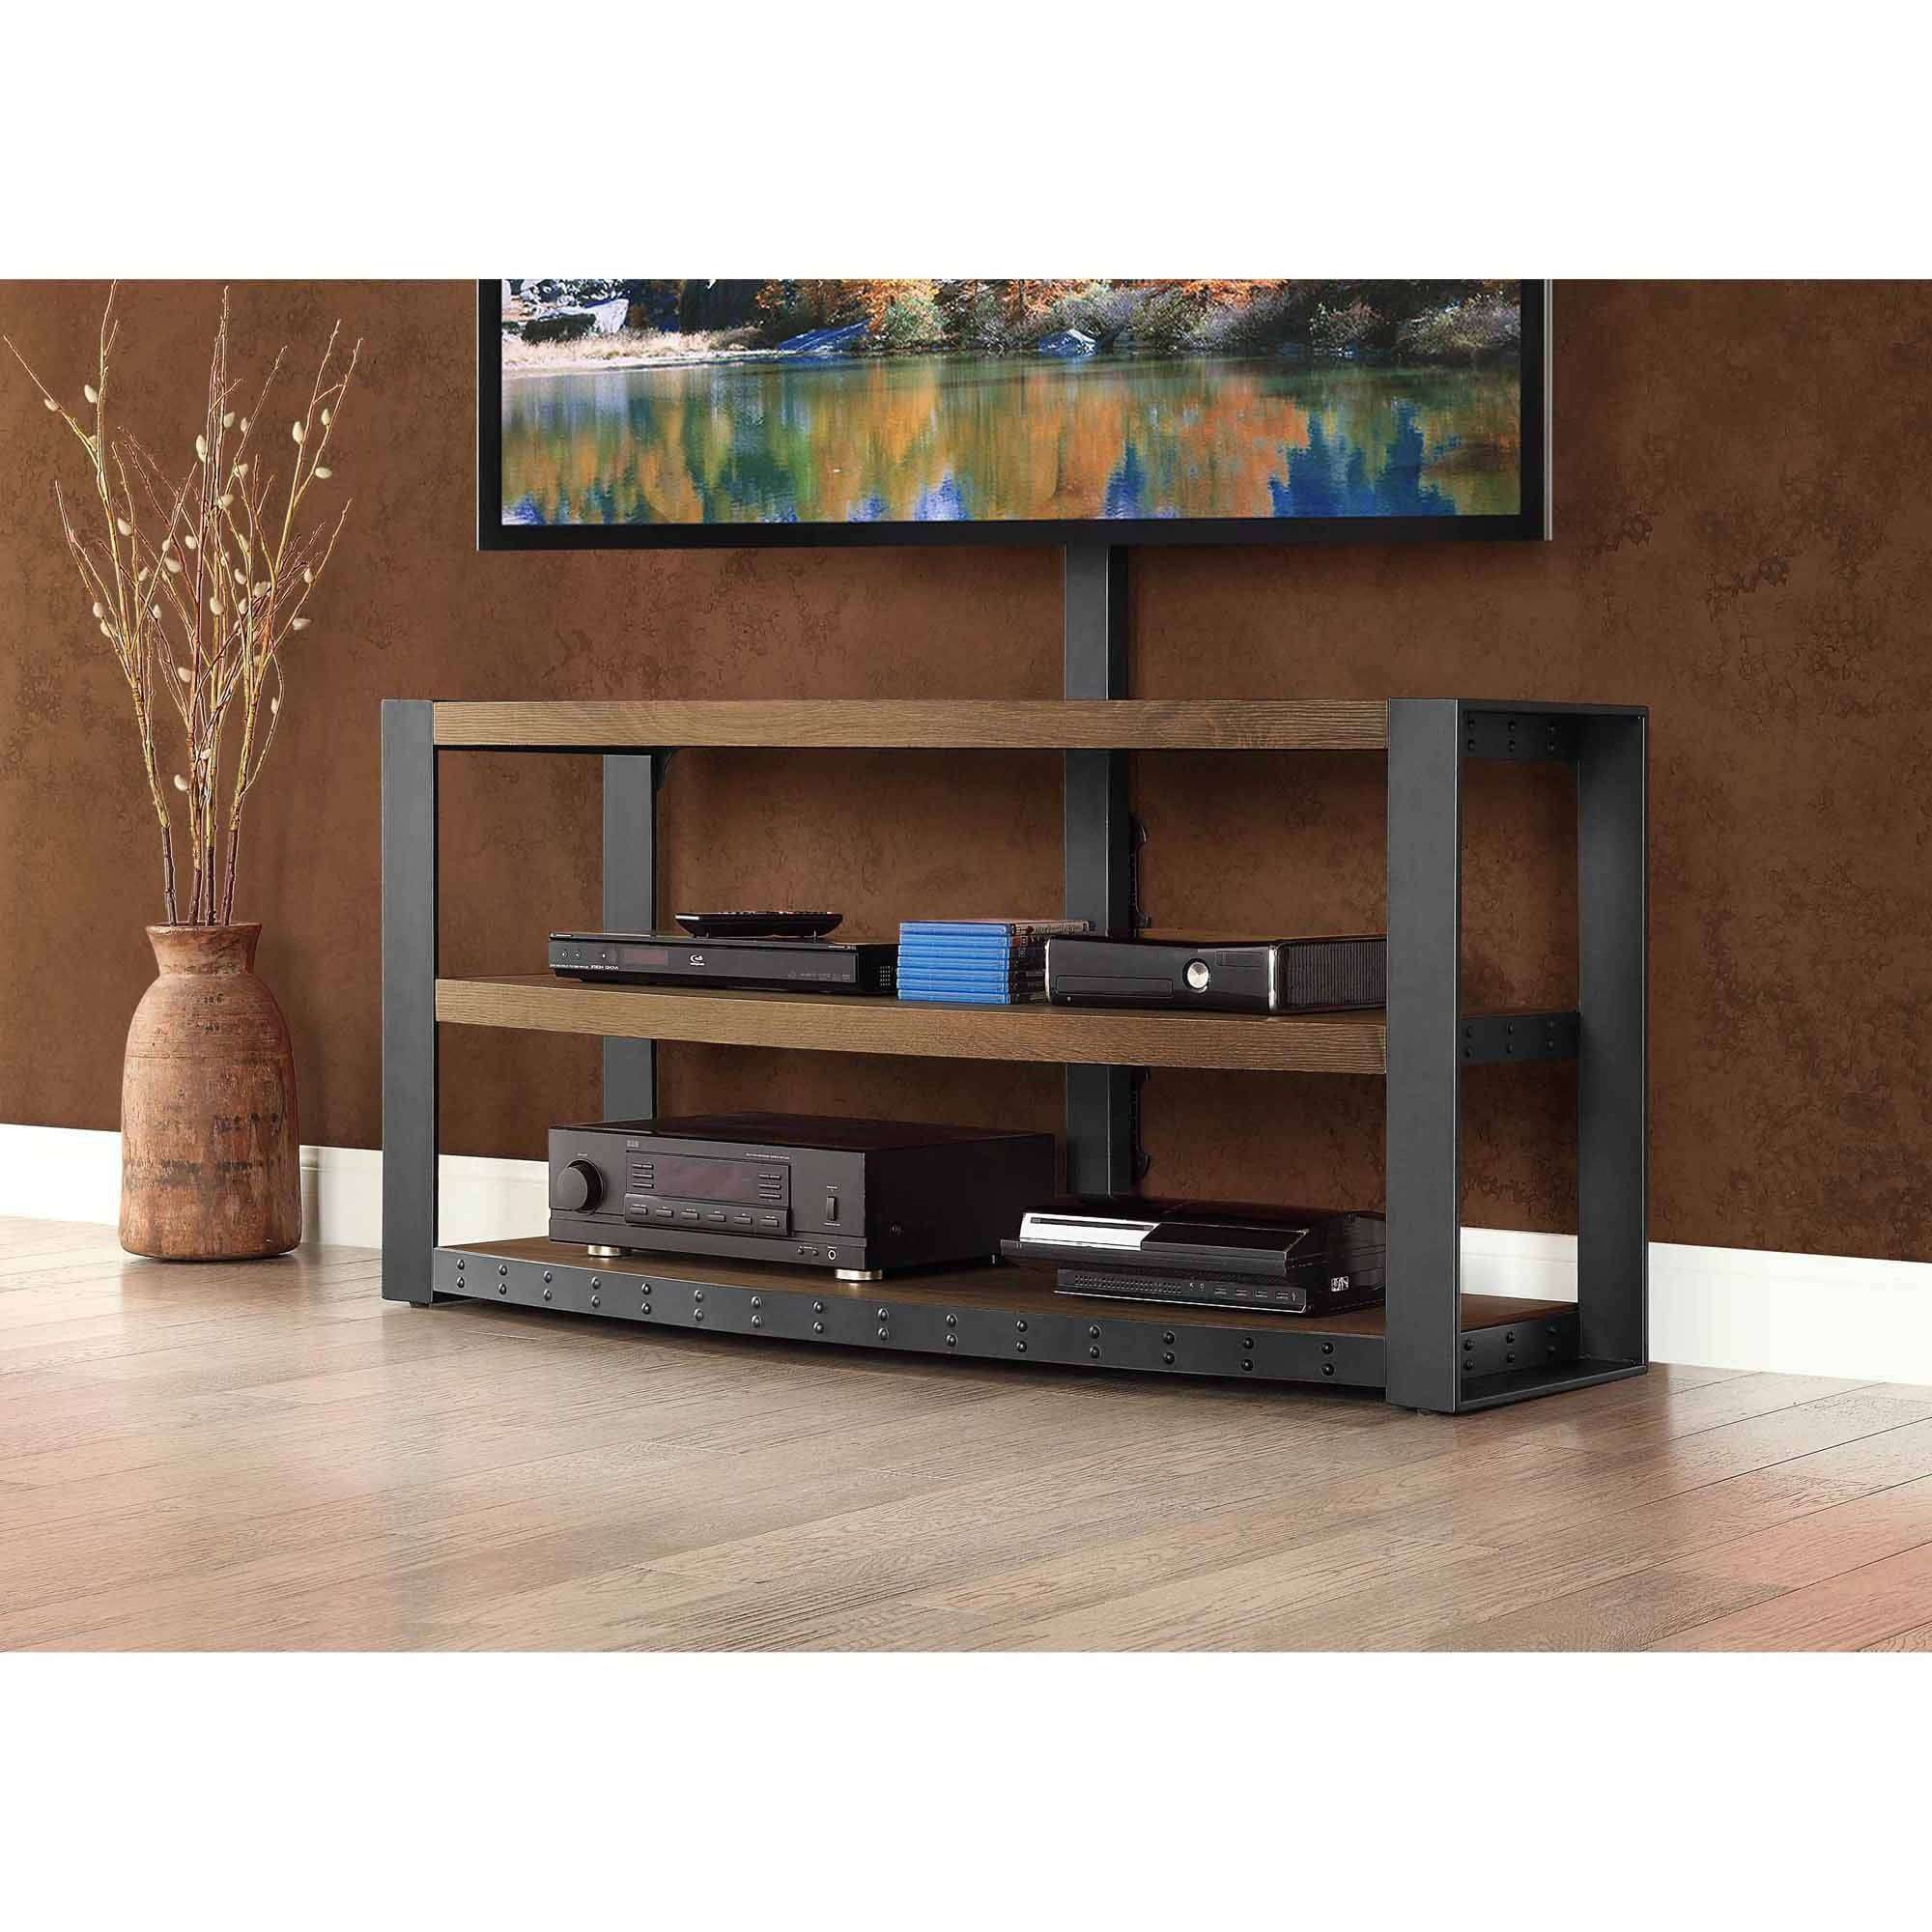 "Whalen Santa Fe 3 In 1 Tv Stand For Tvs Up To 65"", Warm Ash Finish Regarding Brown Tv Stands (View 19 of 20)"